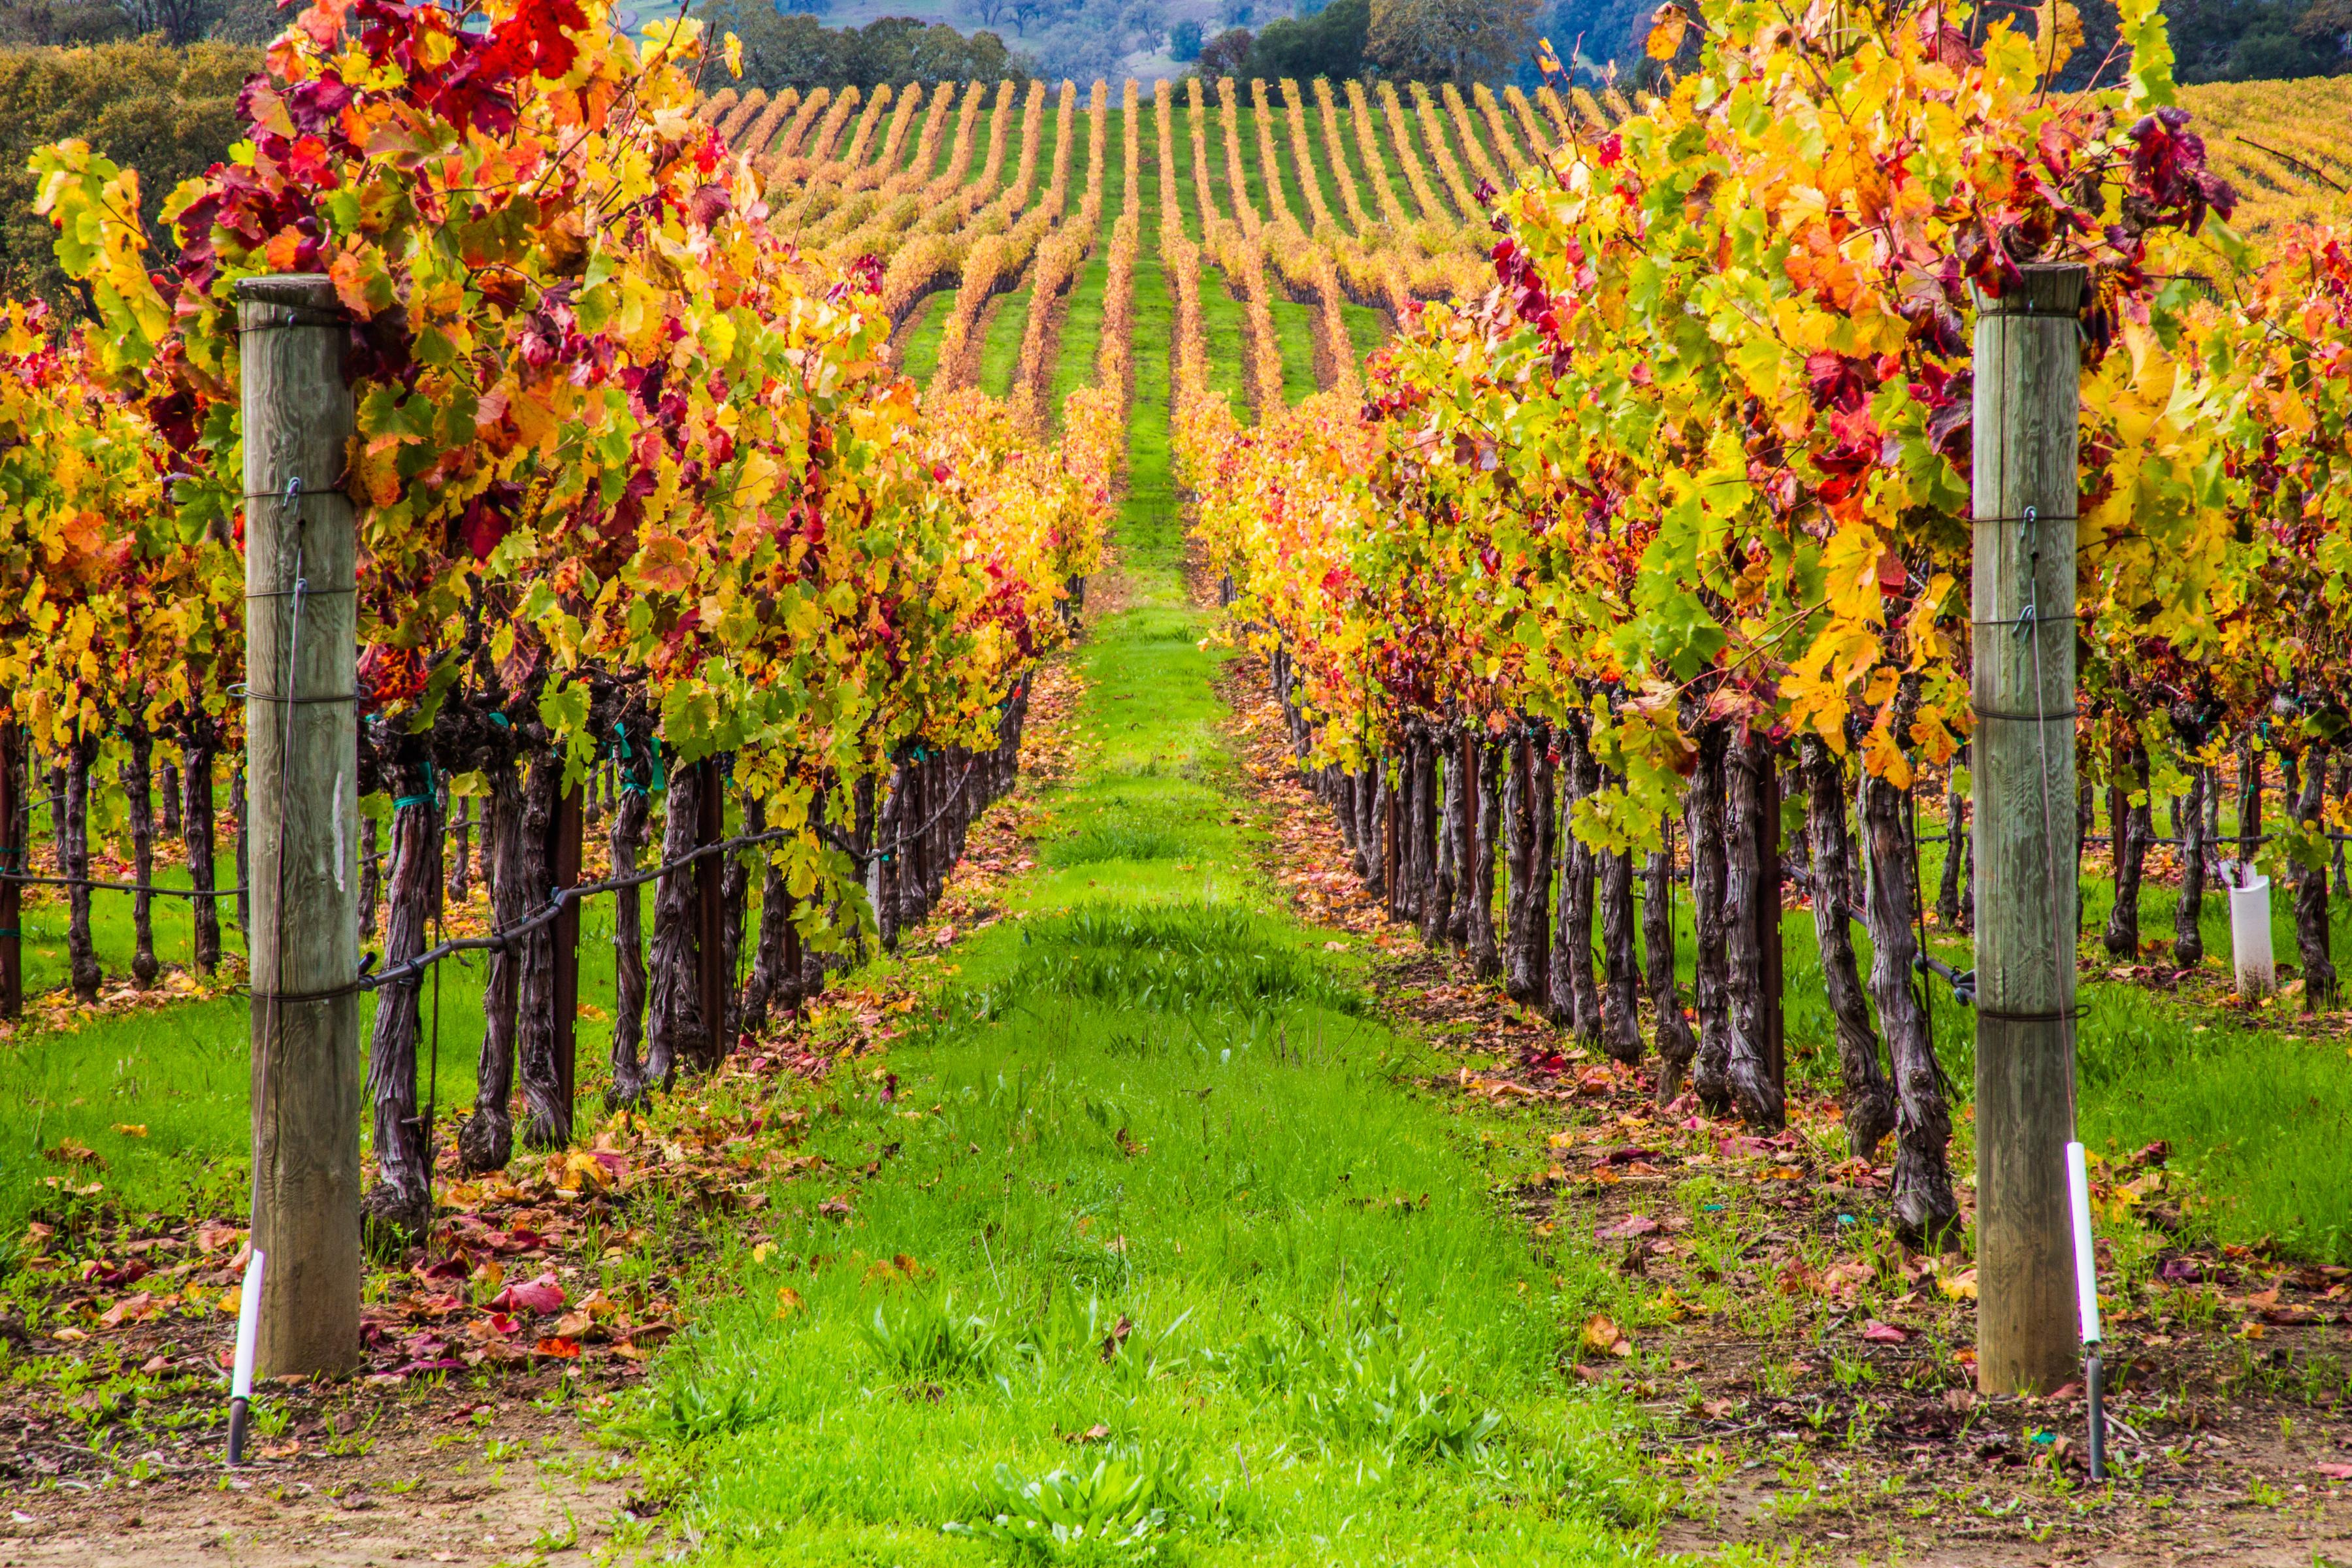 Tour the breathtaking grounds of Scoggins Wines 4 miles away.